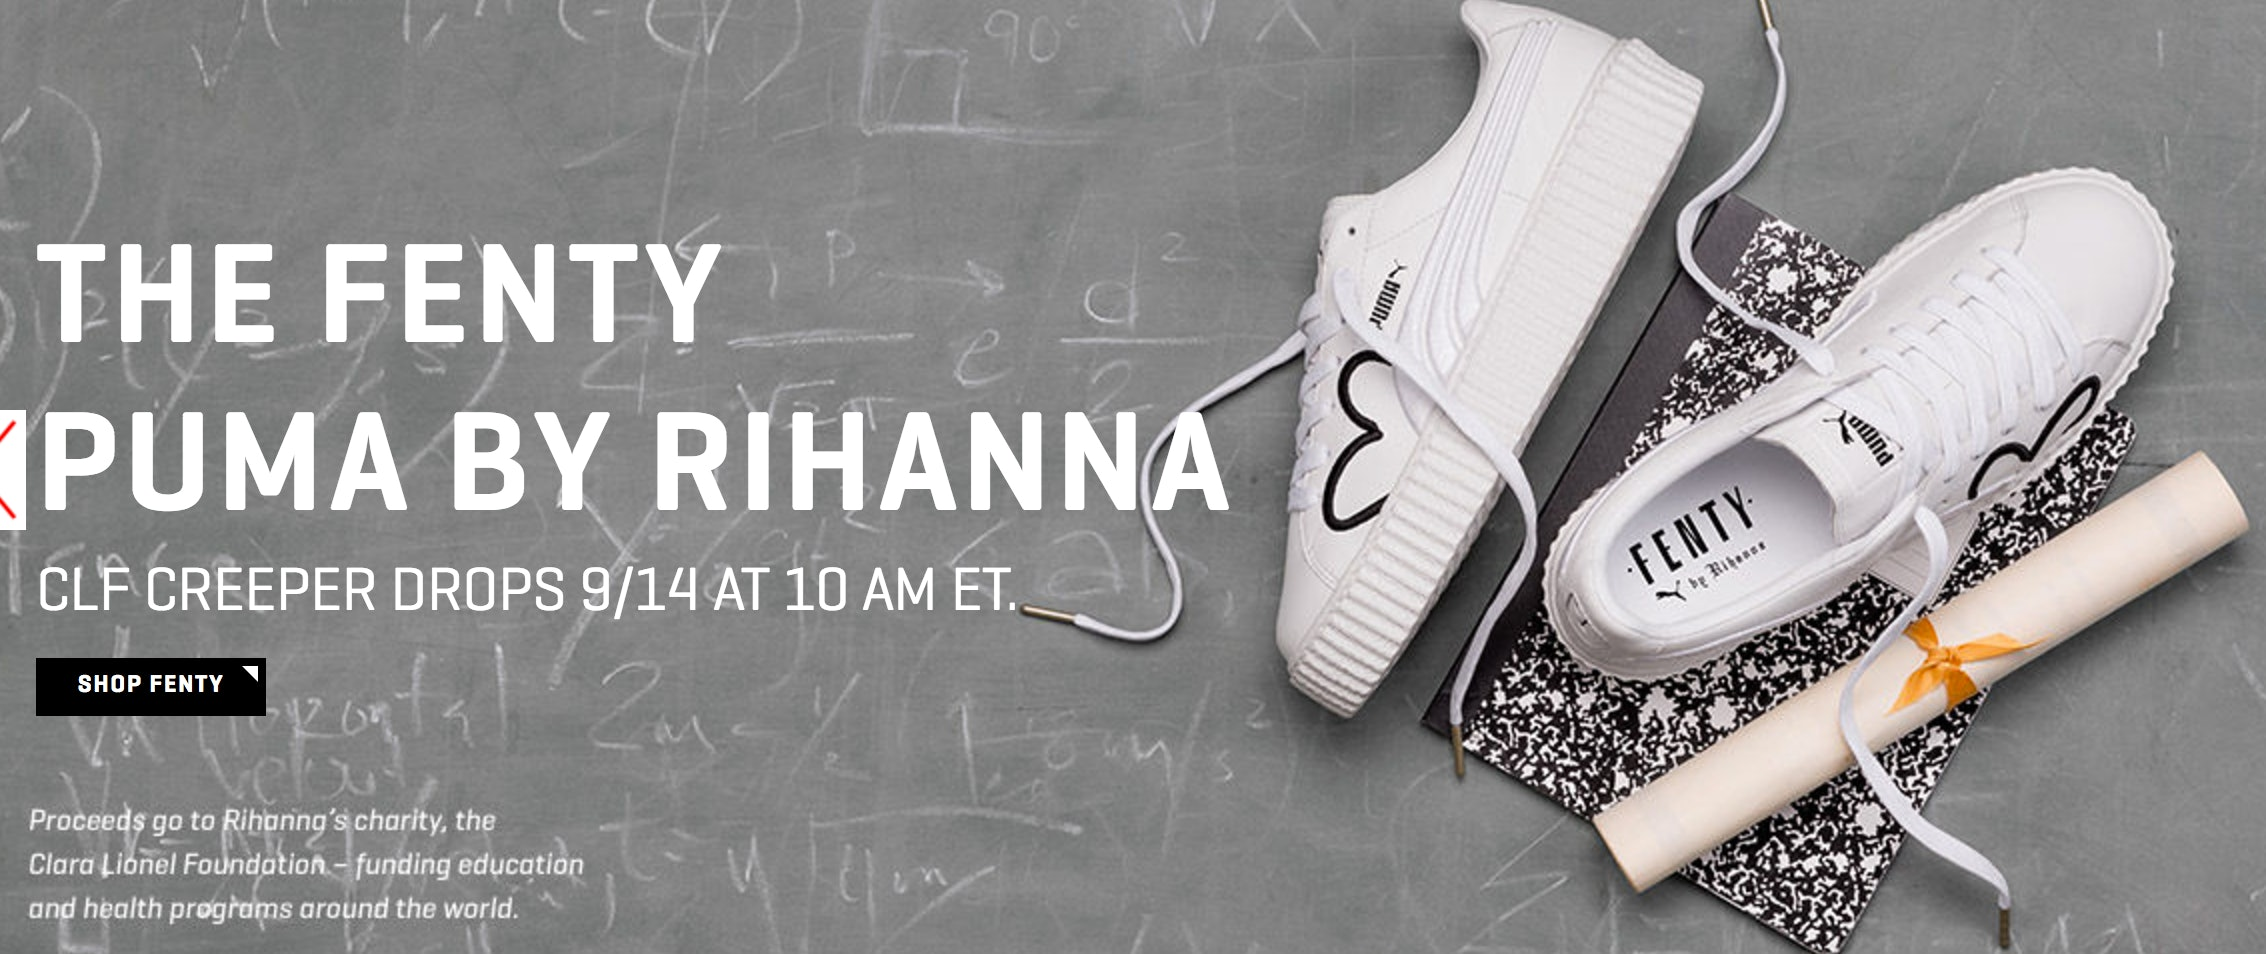 finest selection 1ddb1 59800 When Can You Buy Rihanna x Puma White Leather Creepers? The ...